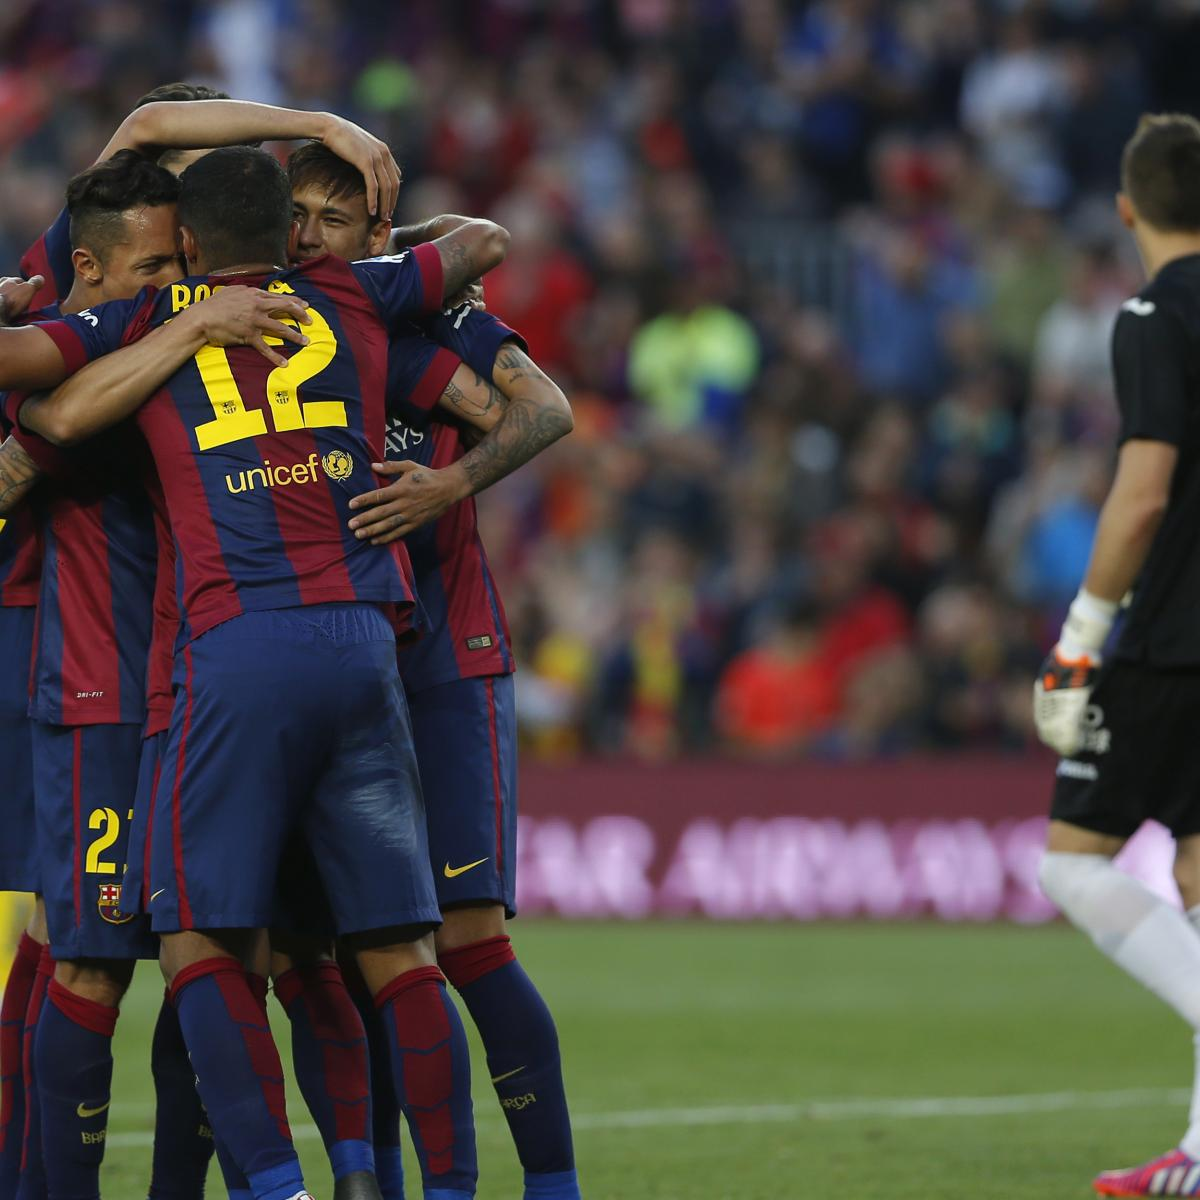 La liga table 2015 updated standings following matchday 35 results bleacher report latest - La liga latest results and table ...